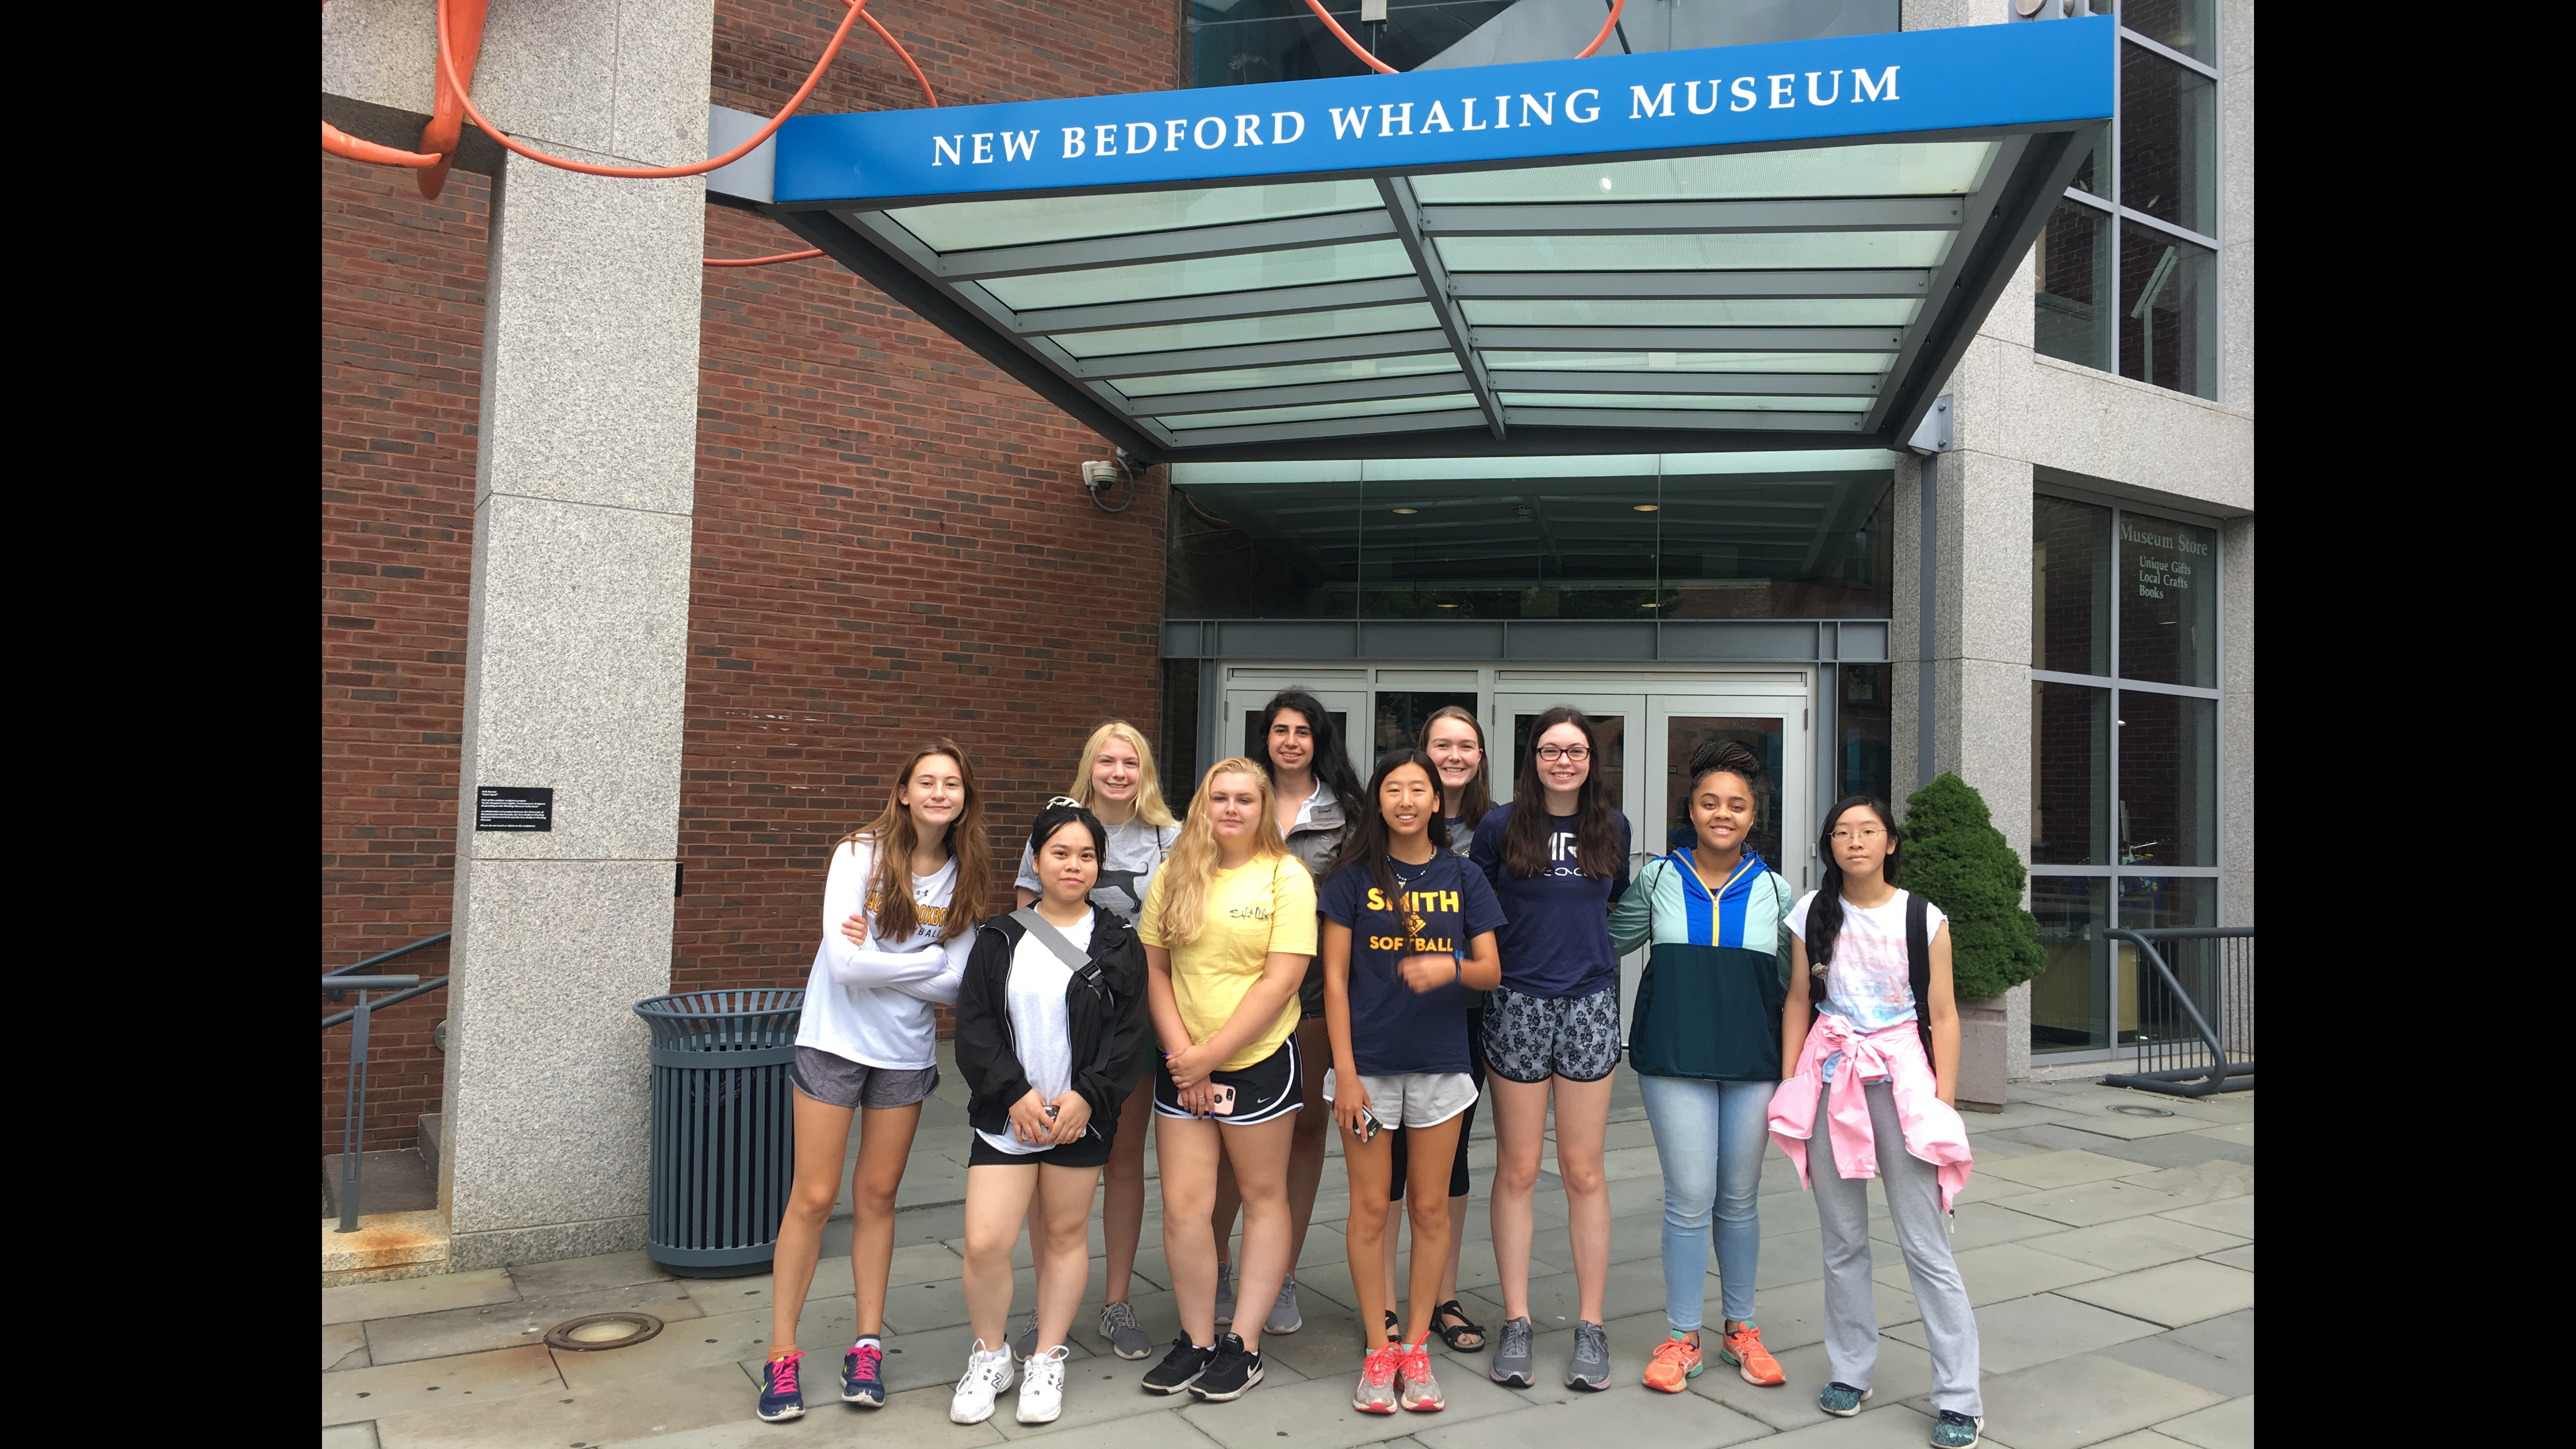 The 10 Girls in Science fellows during their field trip to the New Bedford Whaling Museum.